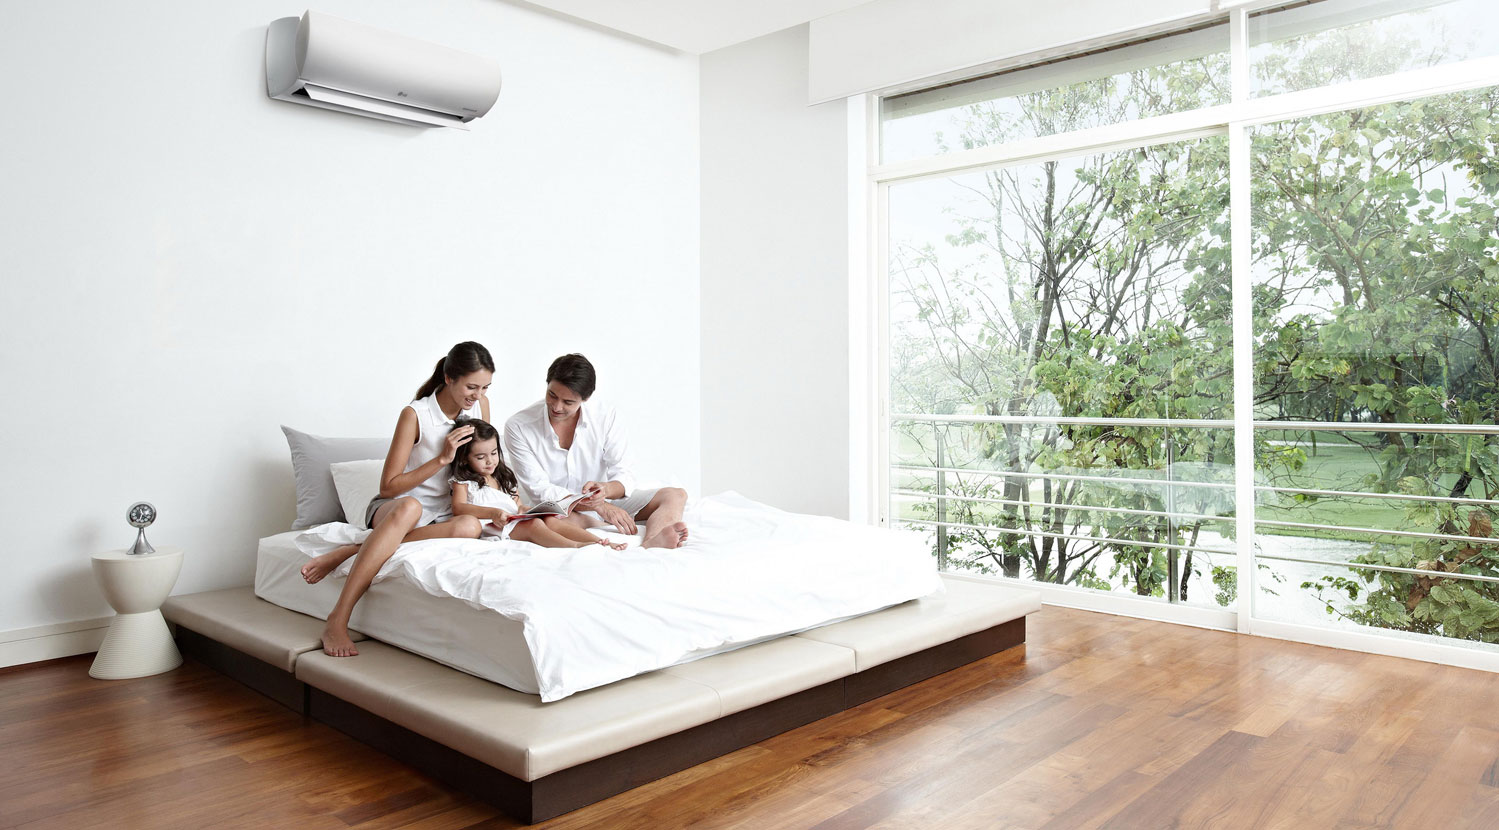 Buying Right Horsepower Air Conditioner For Your Room